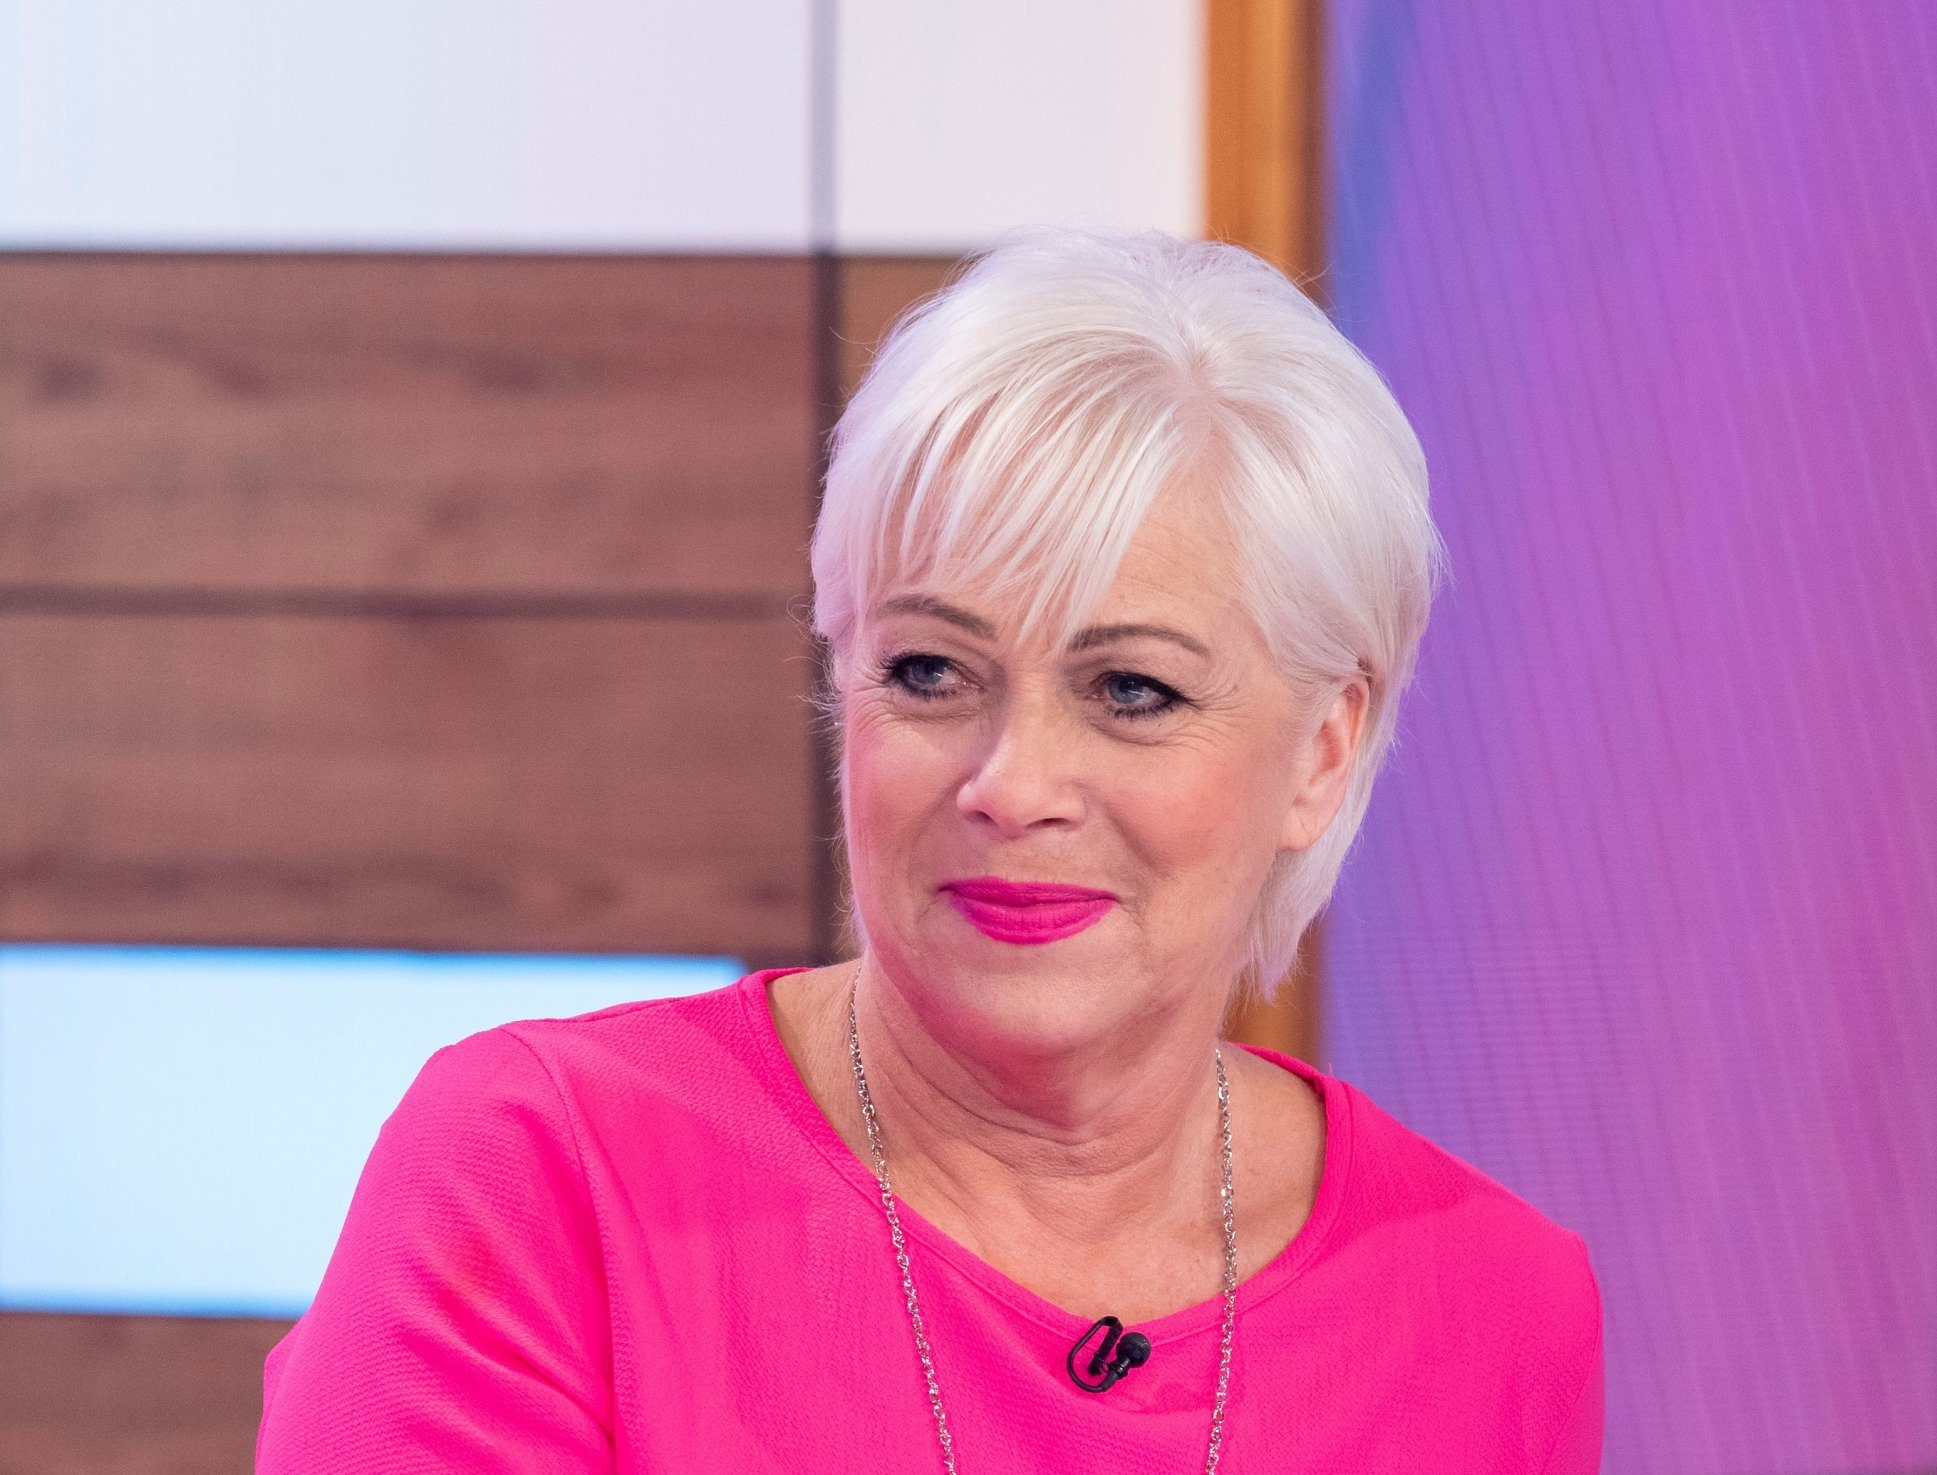 Denise Welch celebrates seven years sober as she admits 'giving up saved my life'